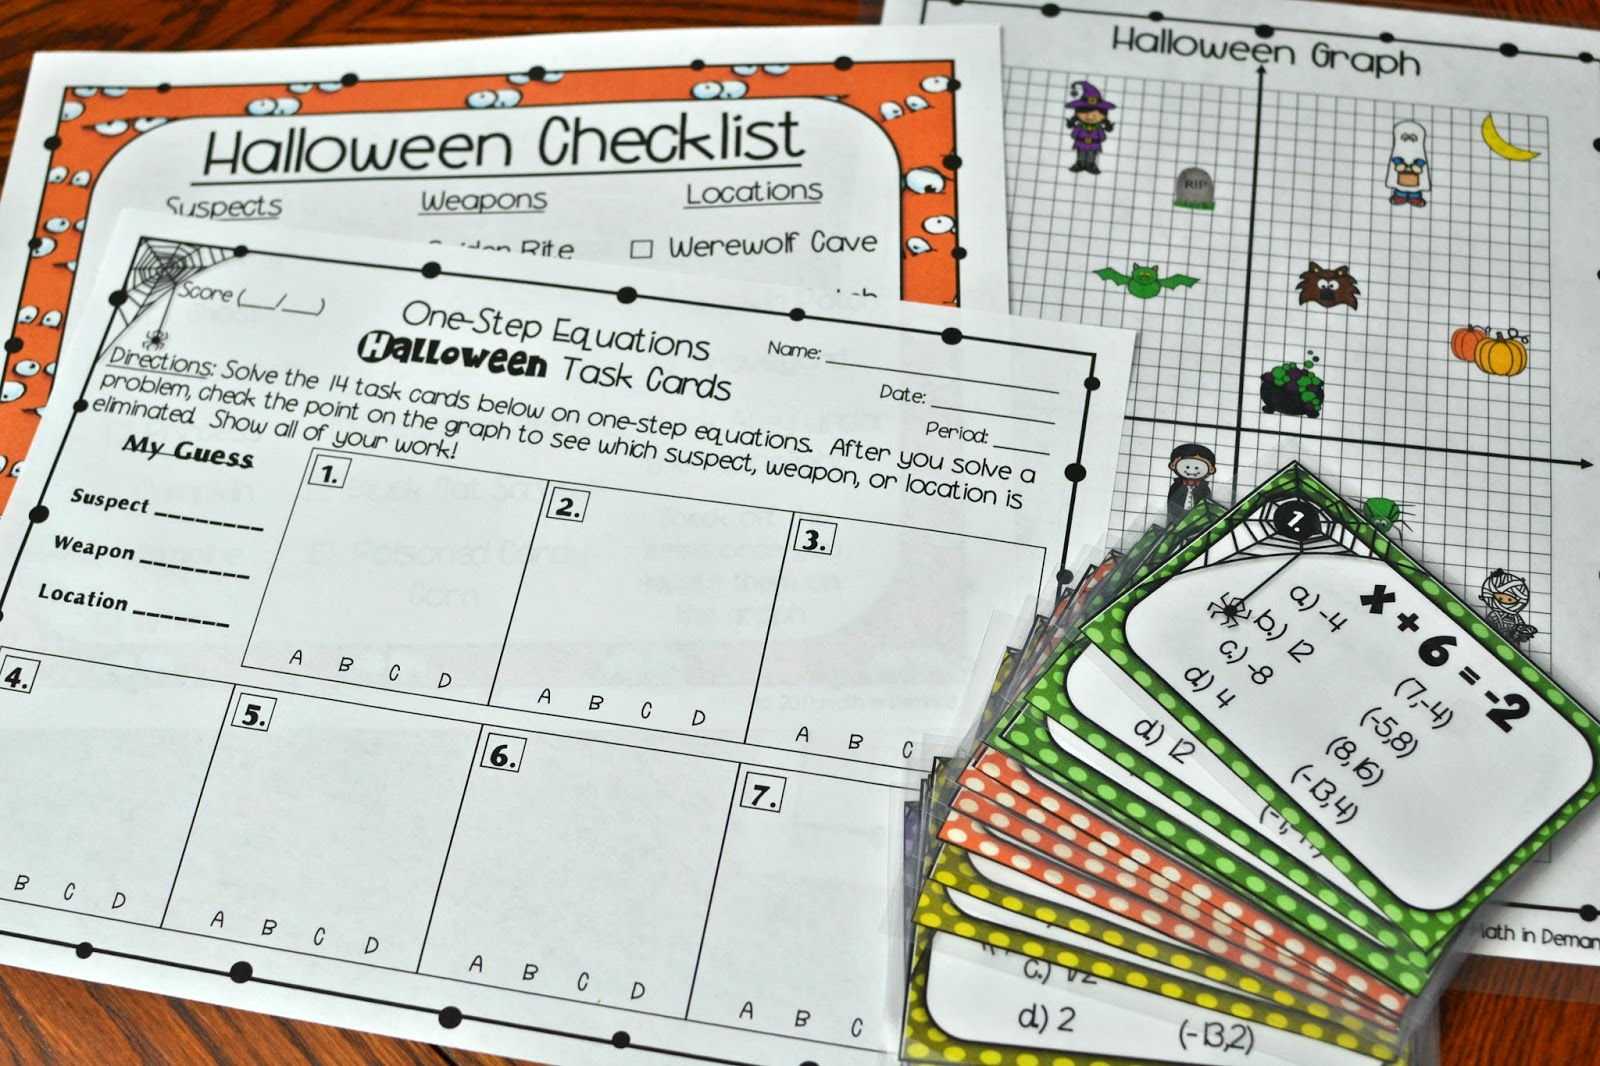 Two Step Equations Halloween Task Cards Mystery Activity